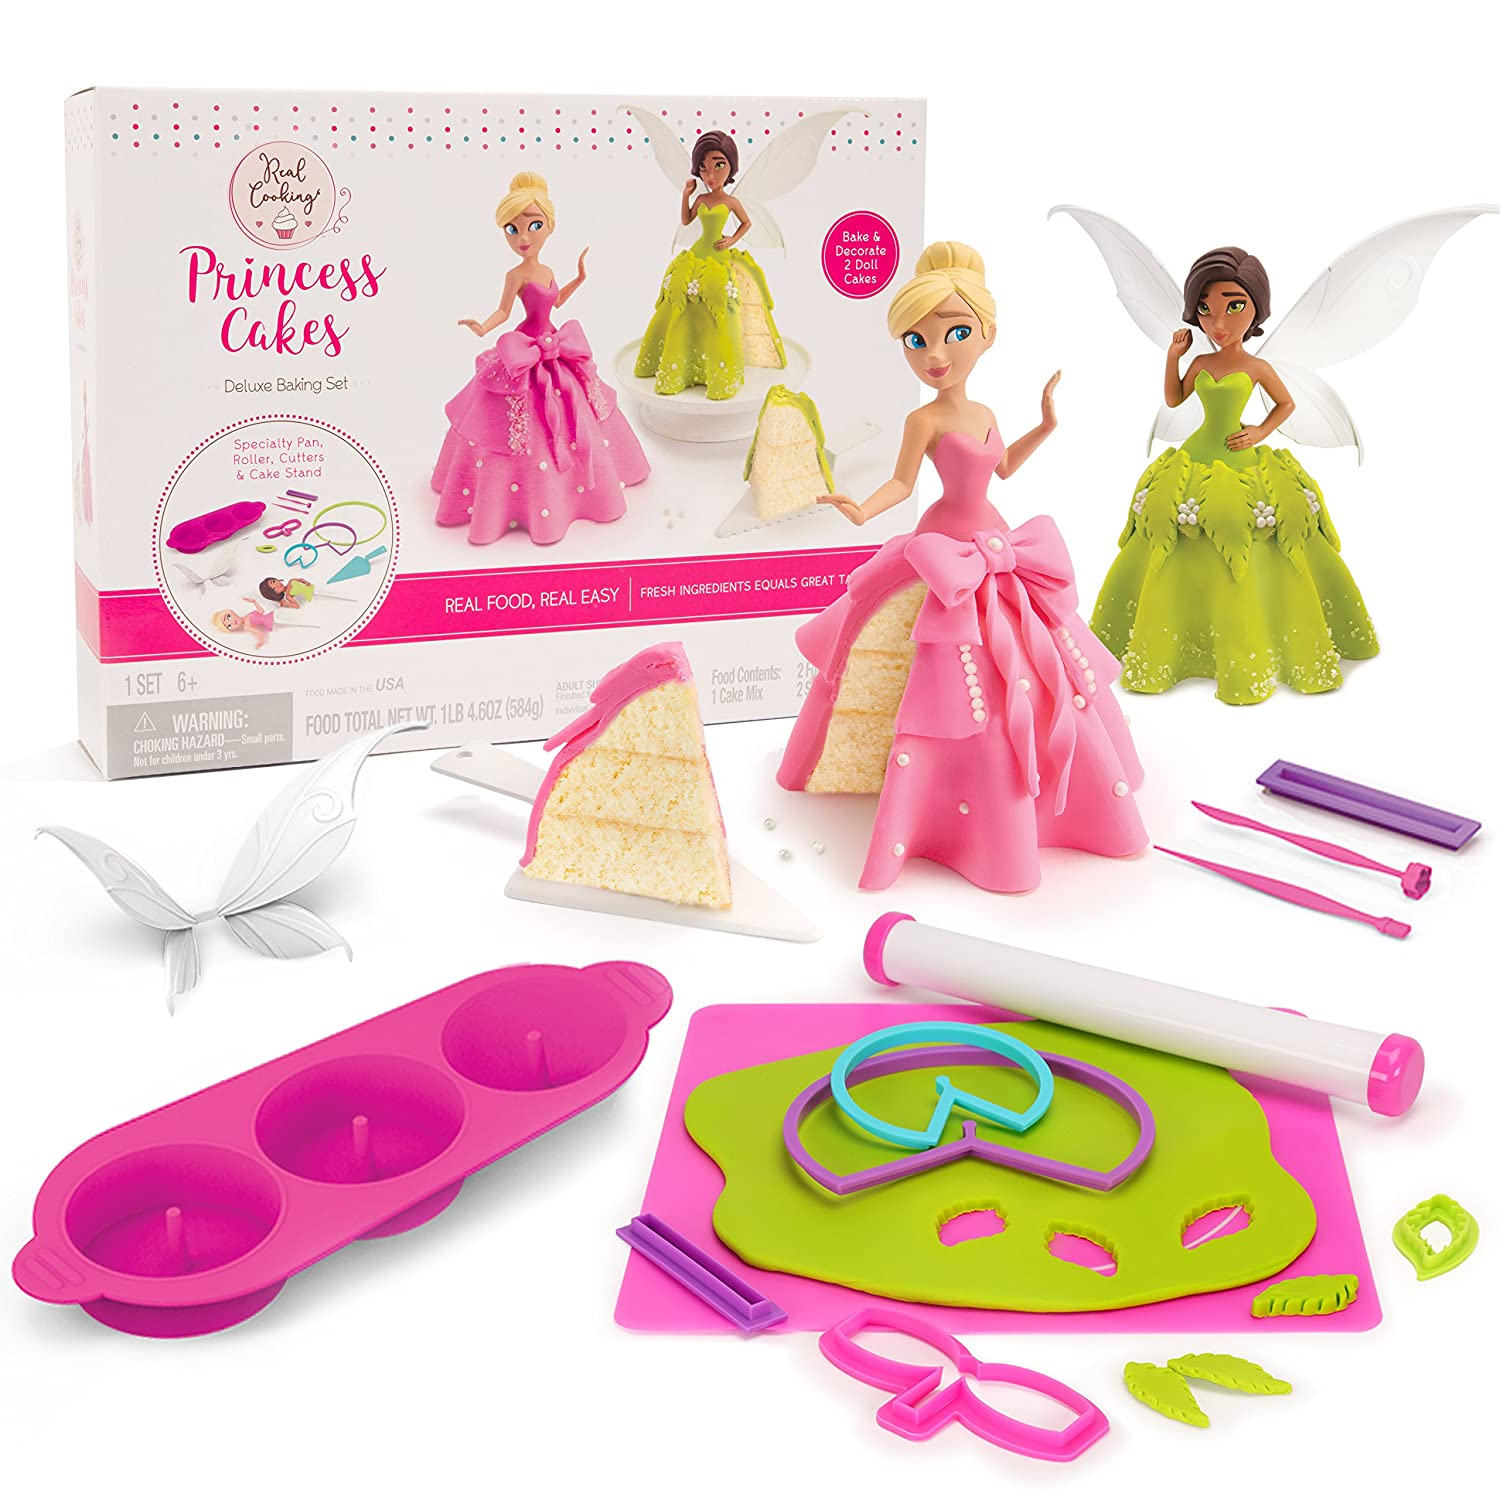 Real Cooking Princess Cakes Deluxe Baking Set - 22 Pc. Kit Includes Cake Mix, Fondant, and Sprinkles